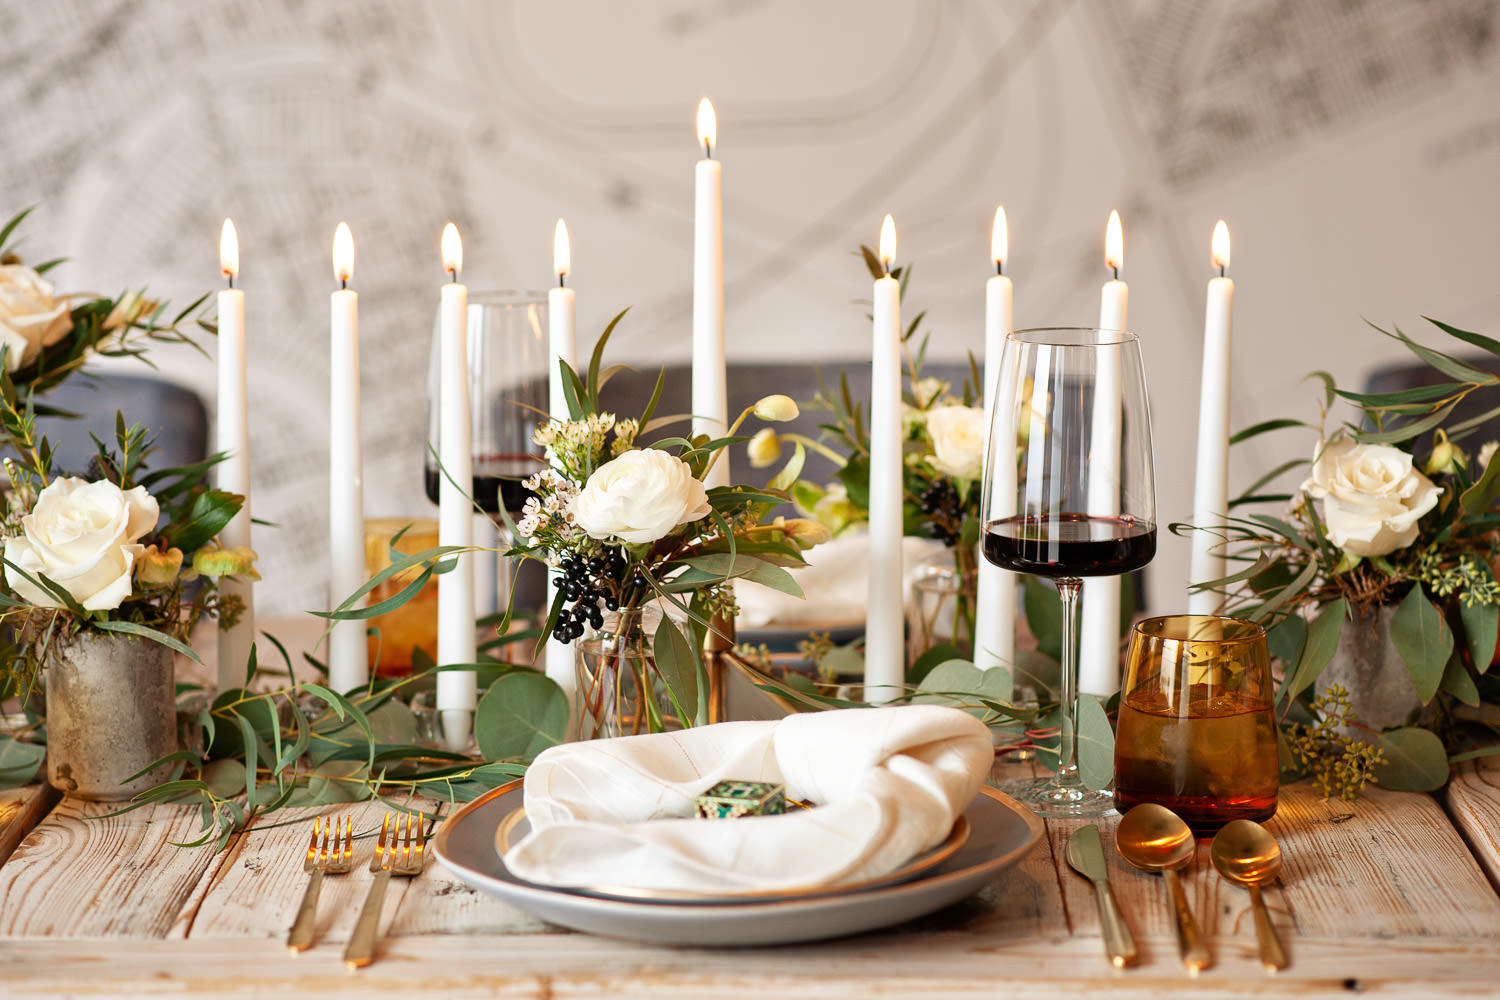 Hanukkah tabletop inspiration from 206 Event Co. captured by Tara Whittaker Photography